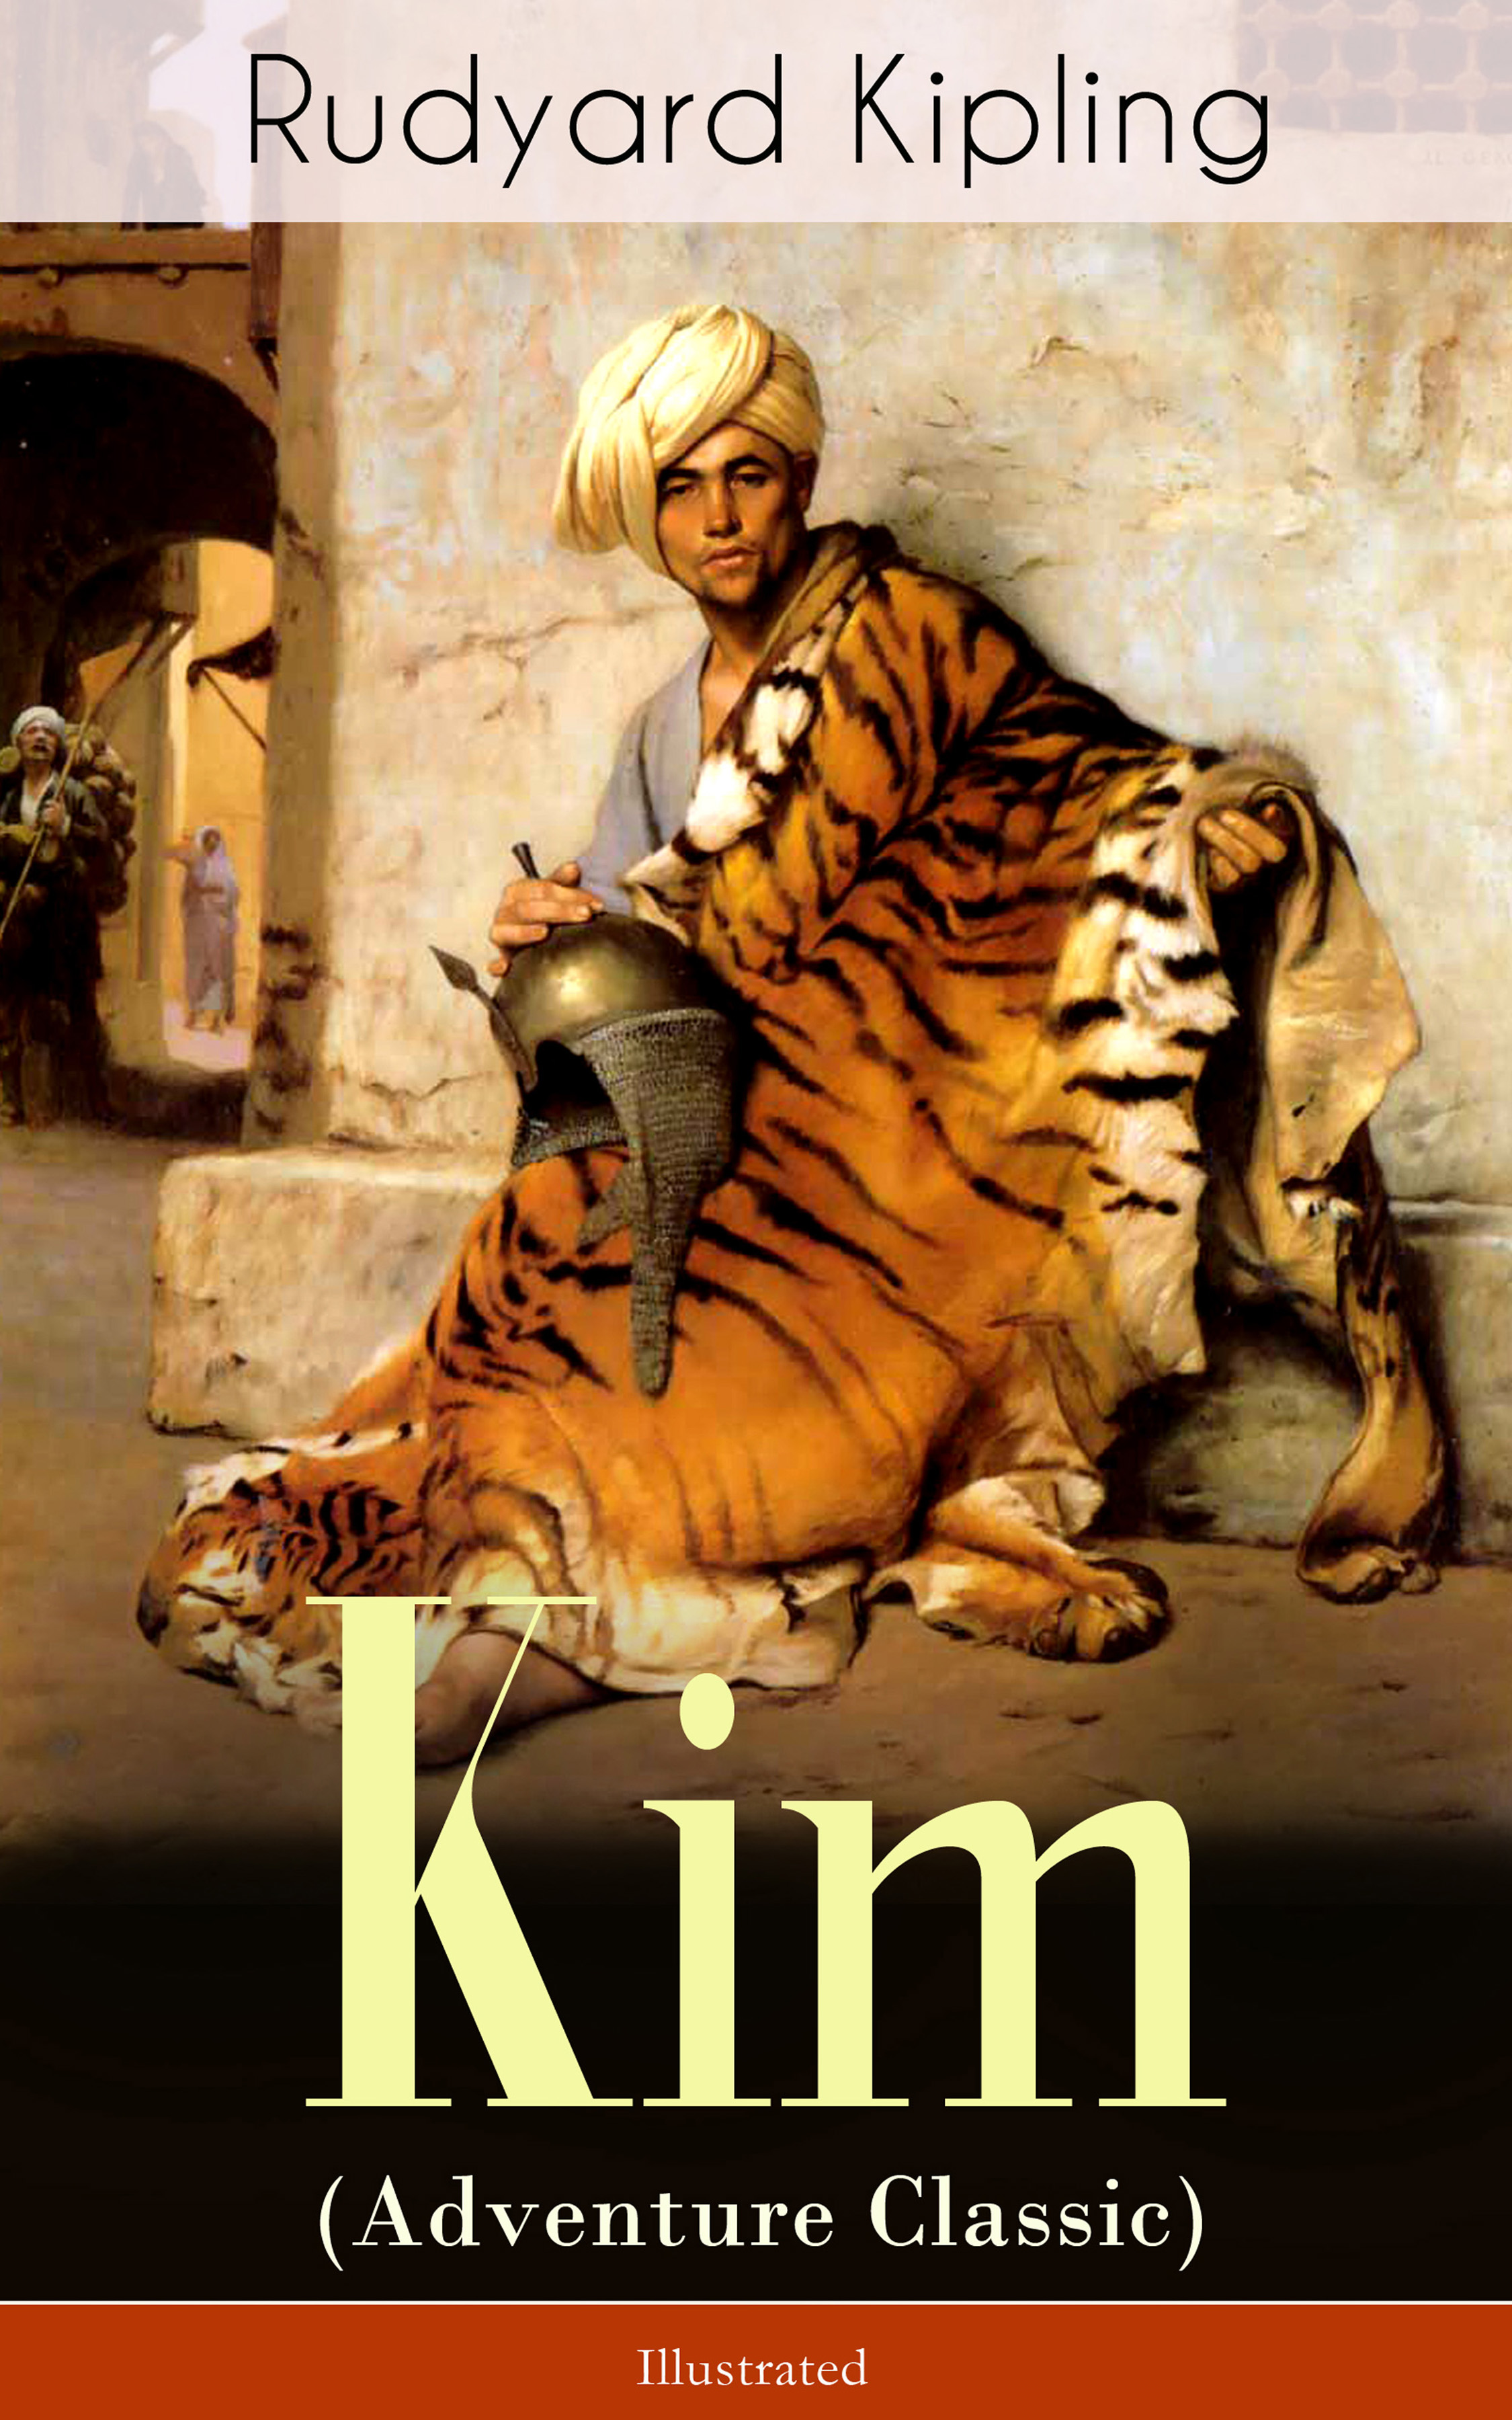 Rudyard 1865-1936 Kipling Kim (Adventure Classic) - Illustrated: A Novel from one of the most popular writers in England, known for The Jungle Book, Just So Stories, Captain Courageous, Stalky & Co, Plain Tales from the Hills, Soldier's Three, The Light That Failed цена 2017